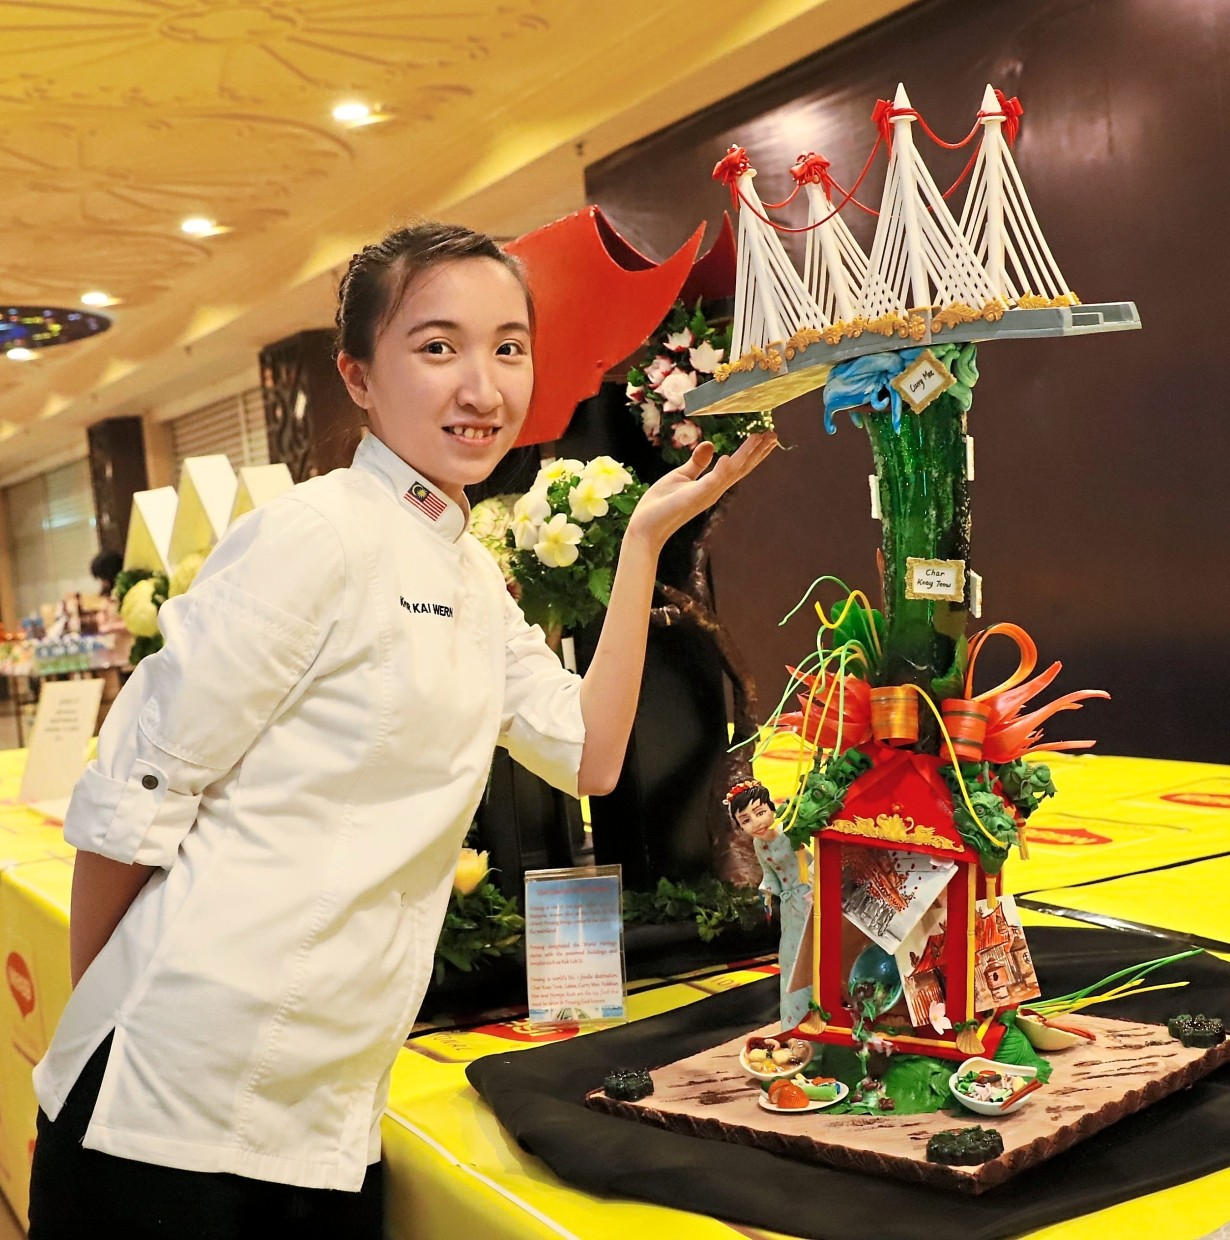 Winning creation: Khor showing her 'Pearl of the Orient' sugar showpiece for the 'Sugar Showpiece' category during the Battle of Global Chinese Chefs 2019 at M Mall in Penang Times Square, George Town.